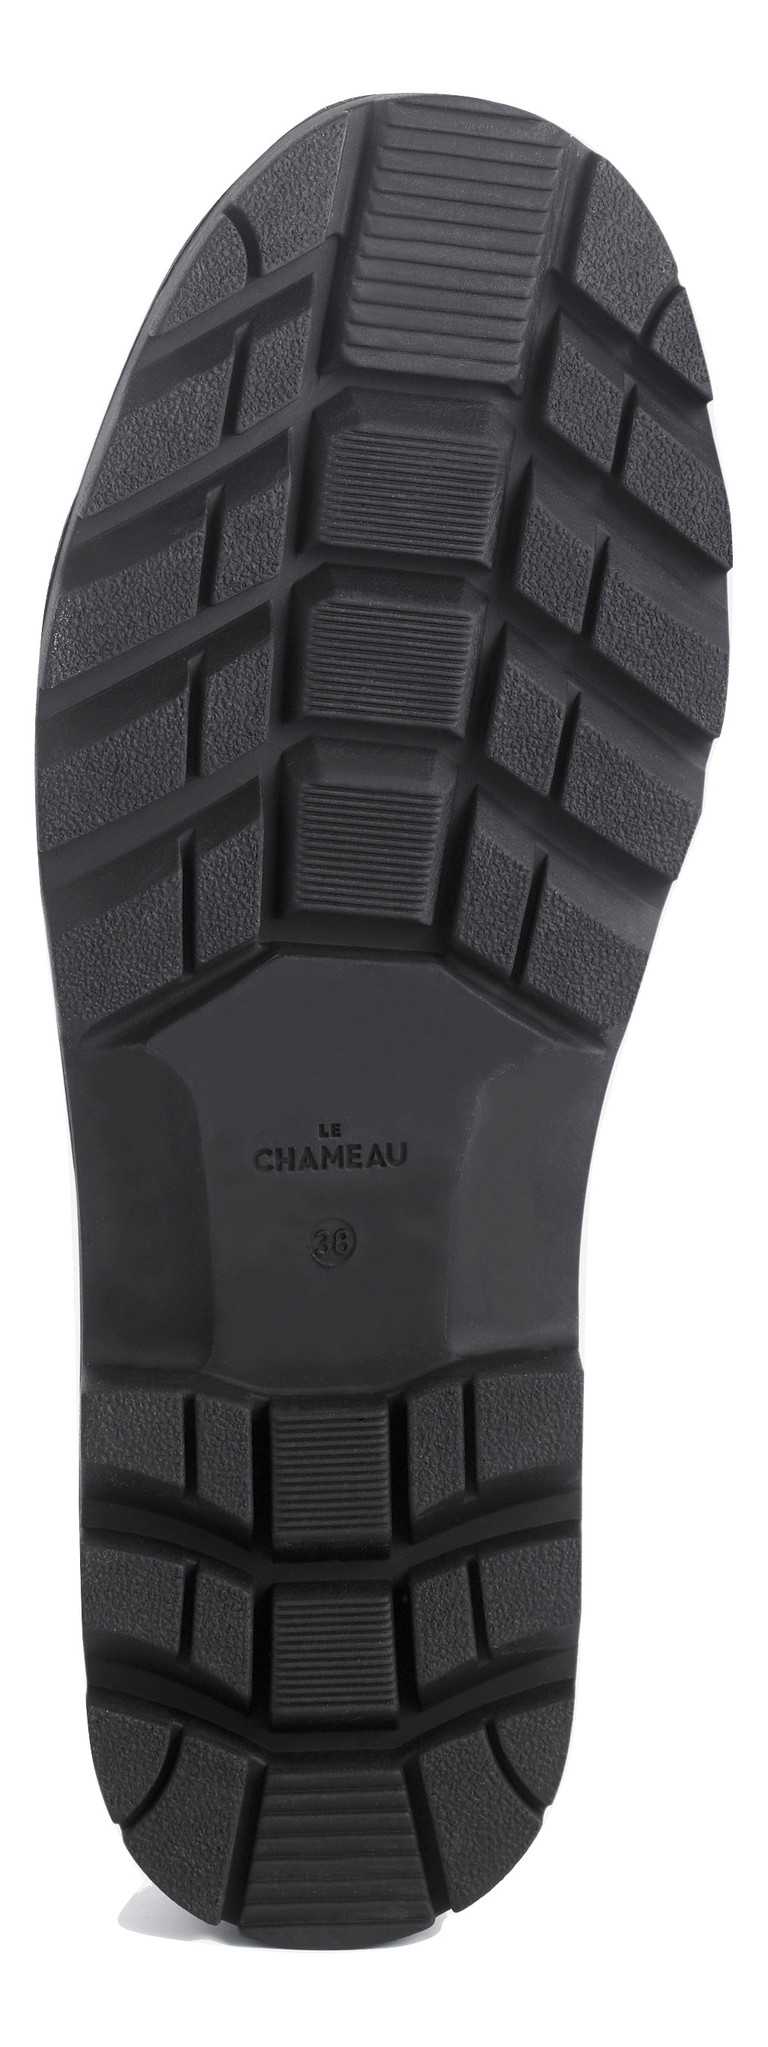 Le Chameau Women's Giverny Jersey Lined Boot Vert Chameau-4